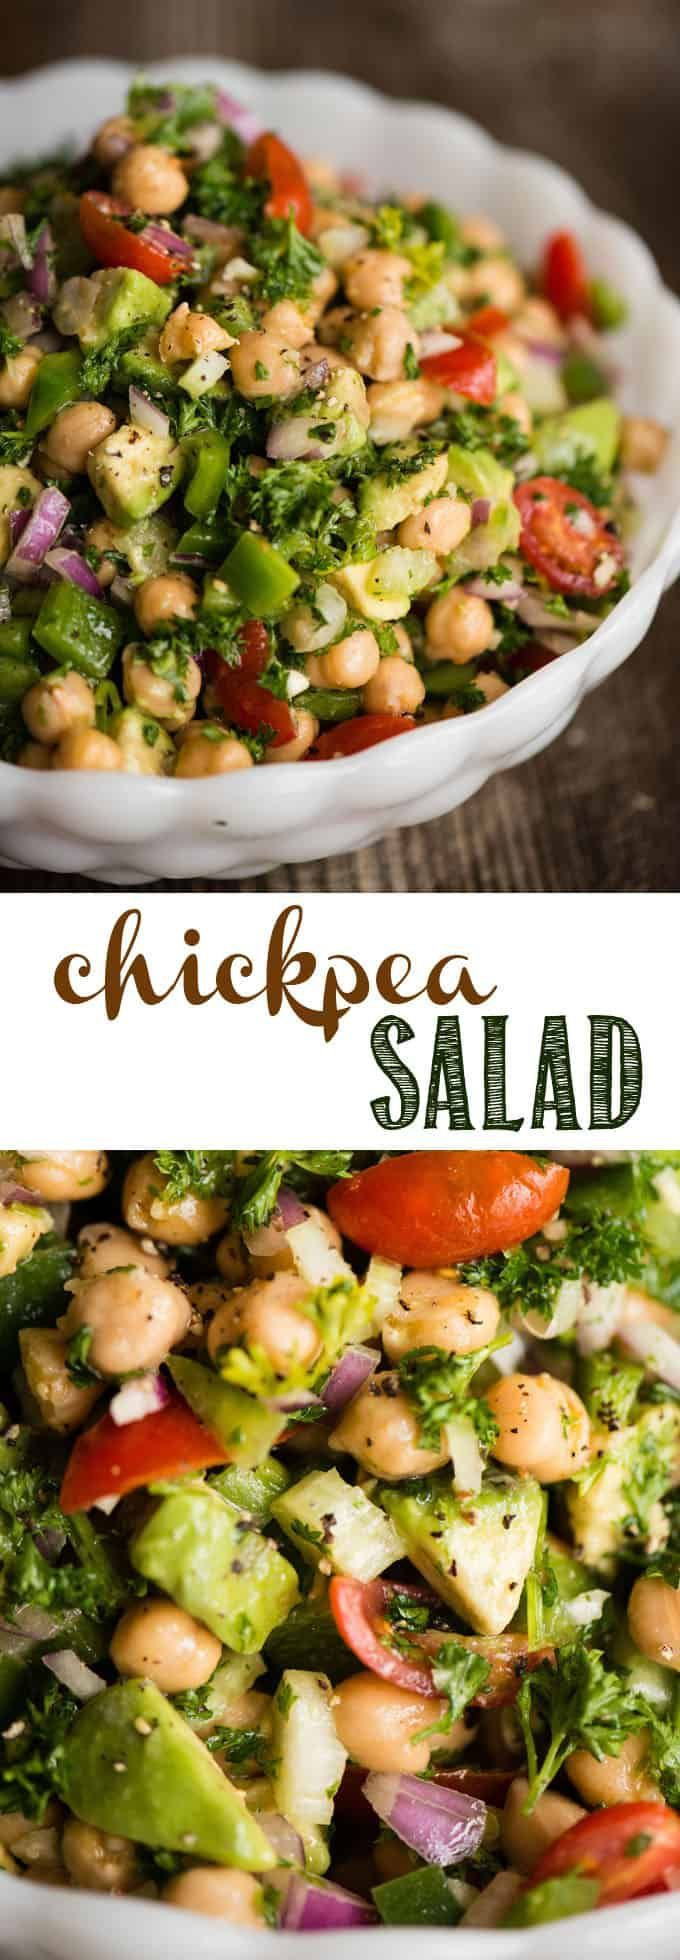 What salads are required 40